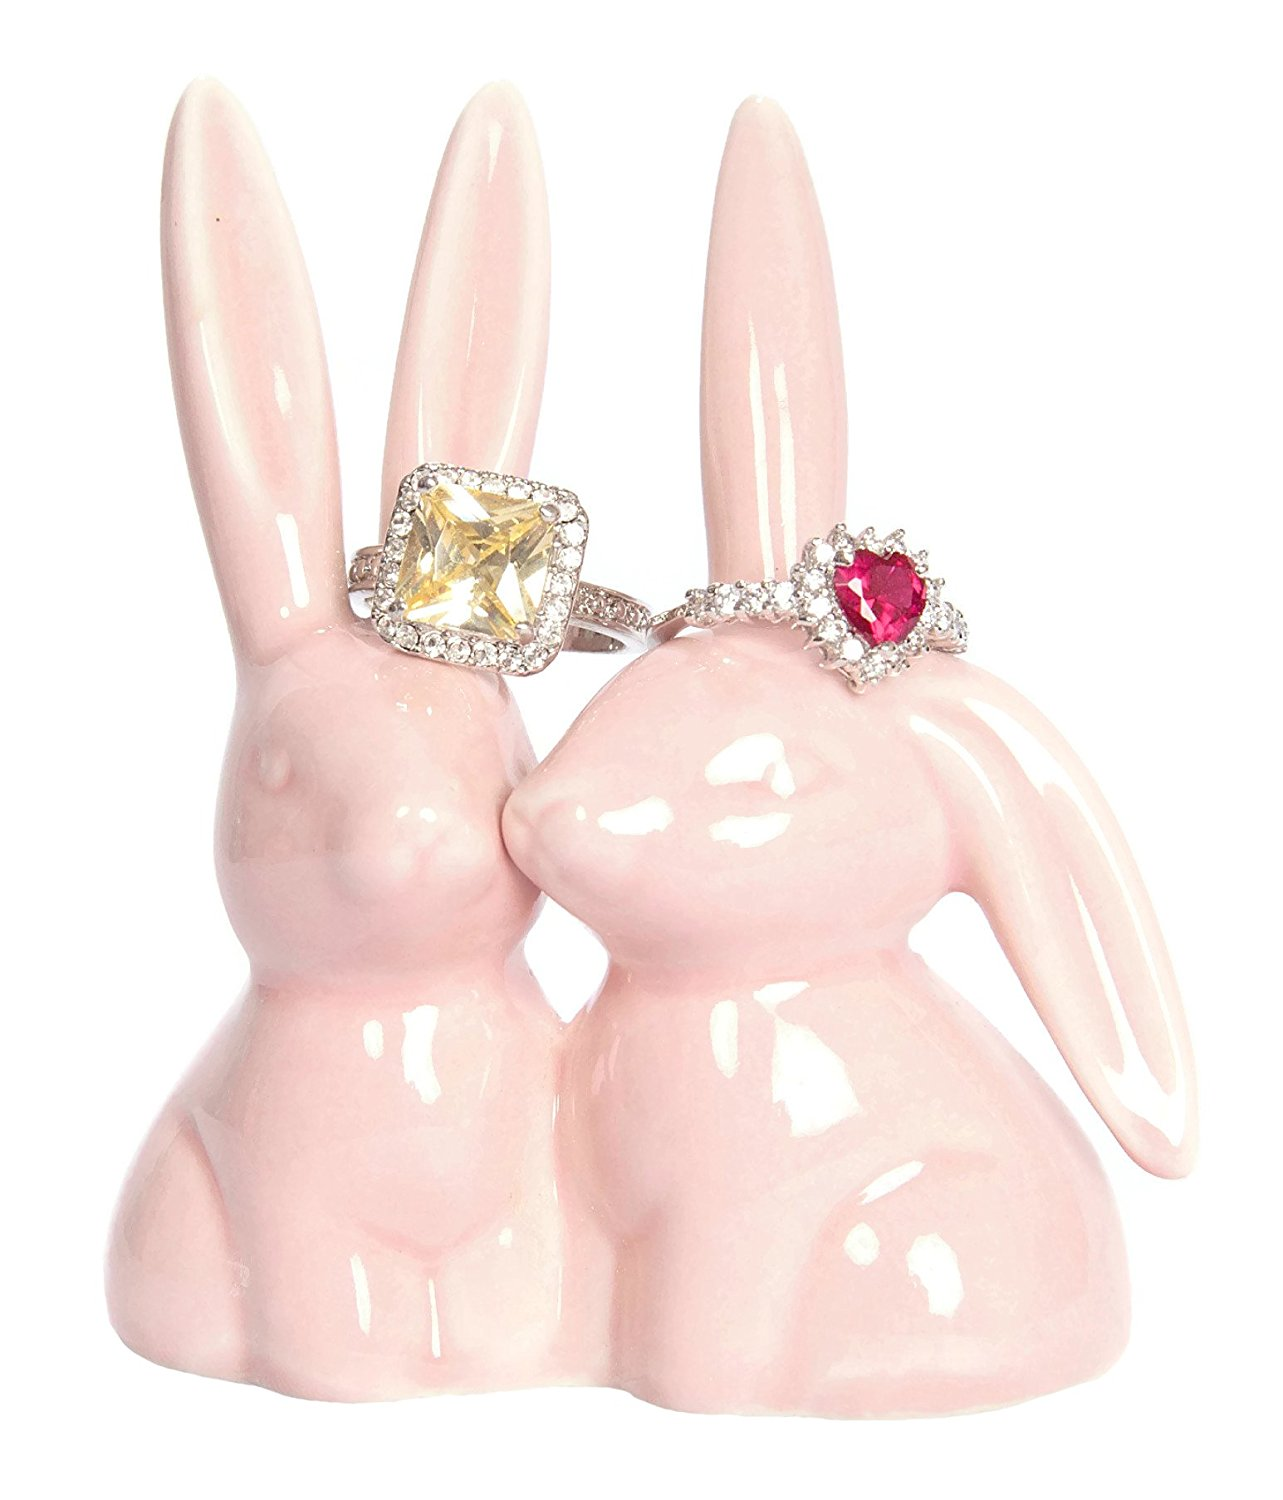 Feng Shui Decor In The Bedroom Should Alwasy Need To Be In Two's - Click Here For These Adorable Bunnies With Many Uses